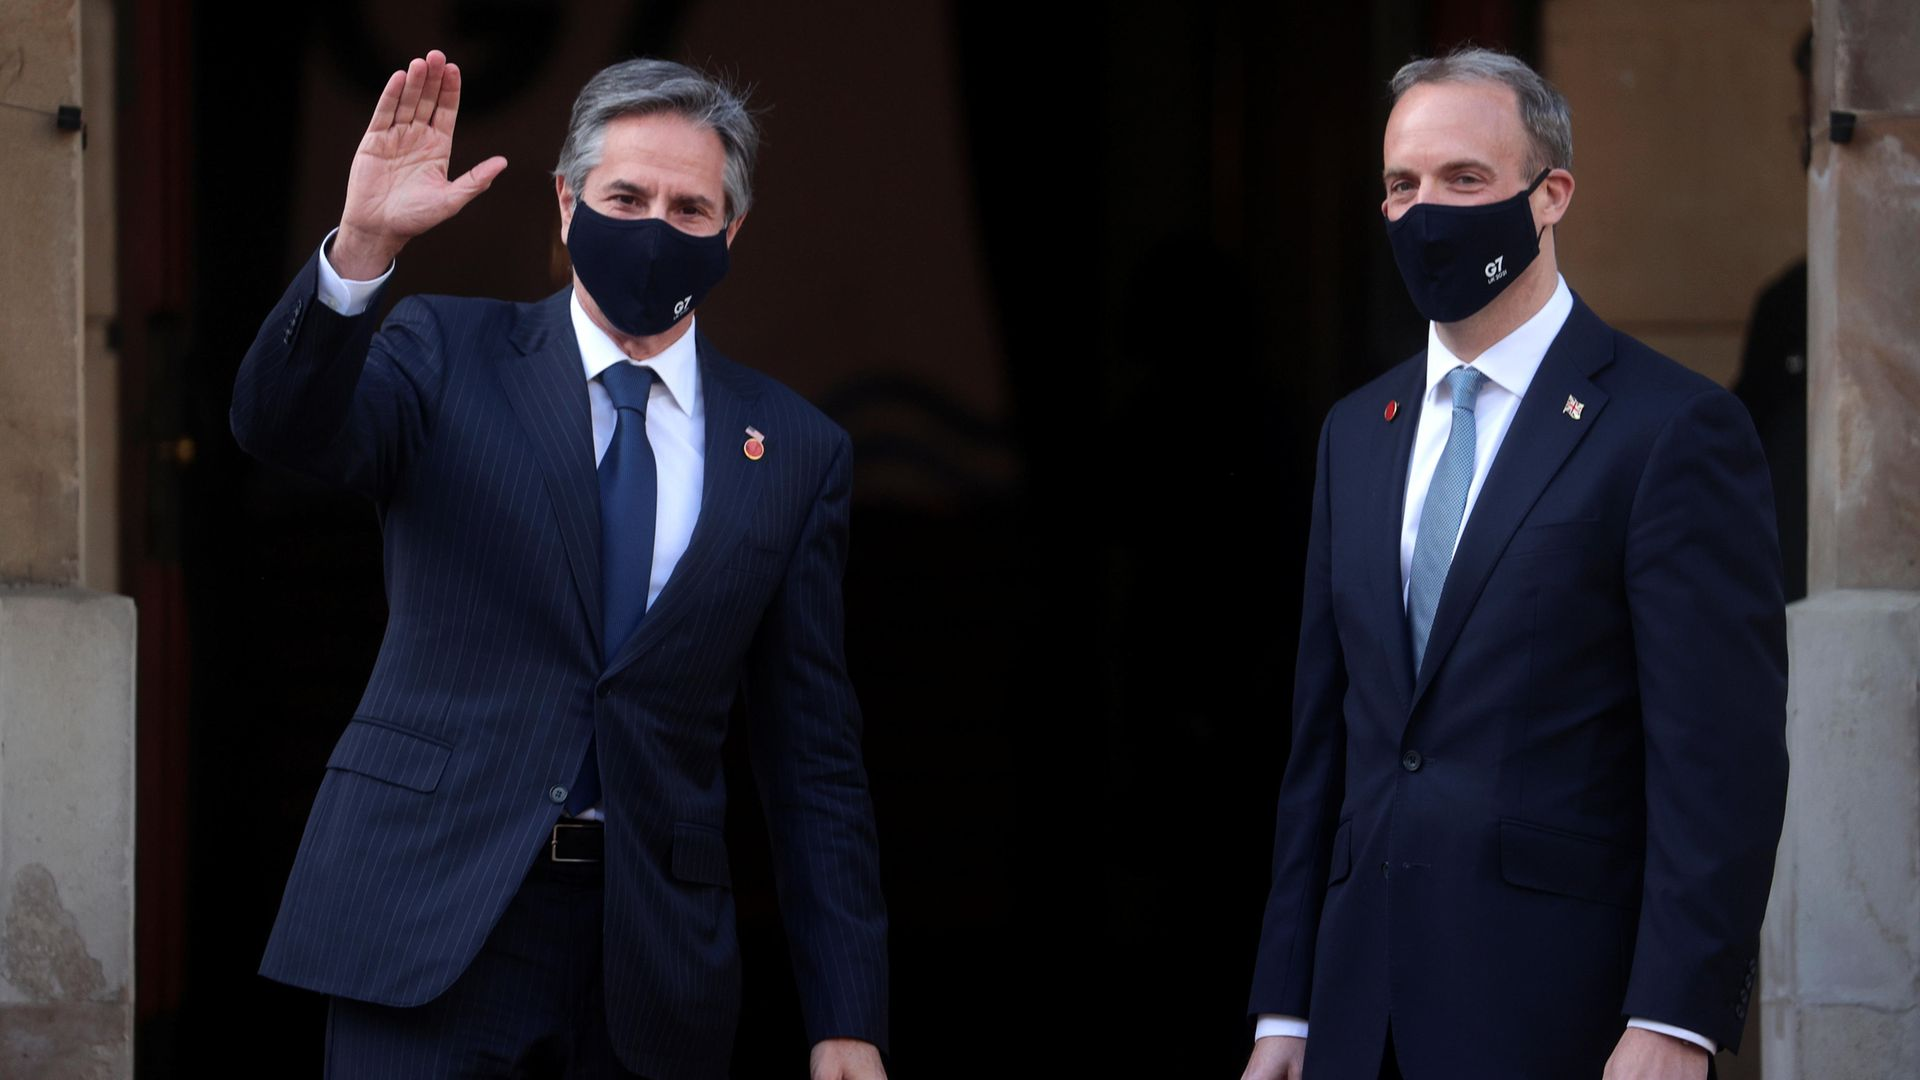 Foreign secretary Dominic Raab (right) welcomes US secretary of state, Antony Blinken (left), arriving at Lancaster House, London, during the G7 foreign and development ministers meeting - Credit: PA